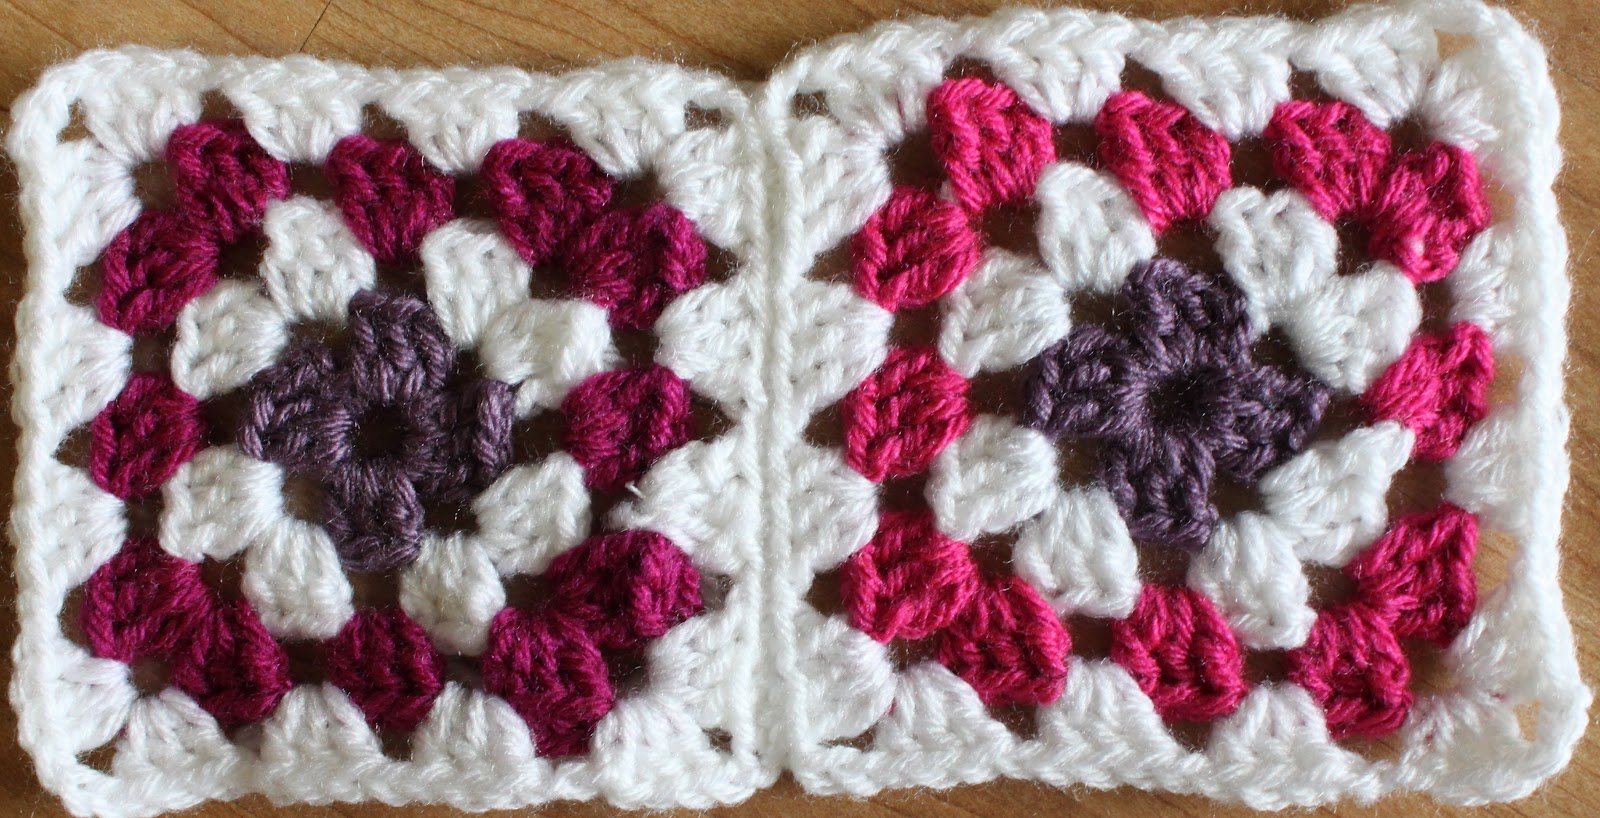 Crocheting granny squares together